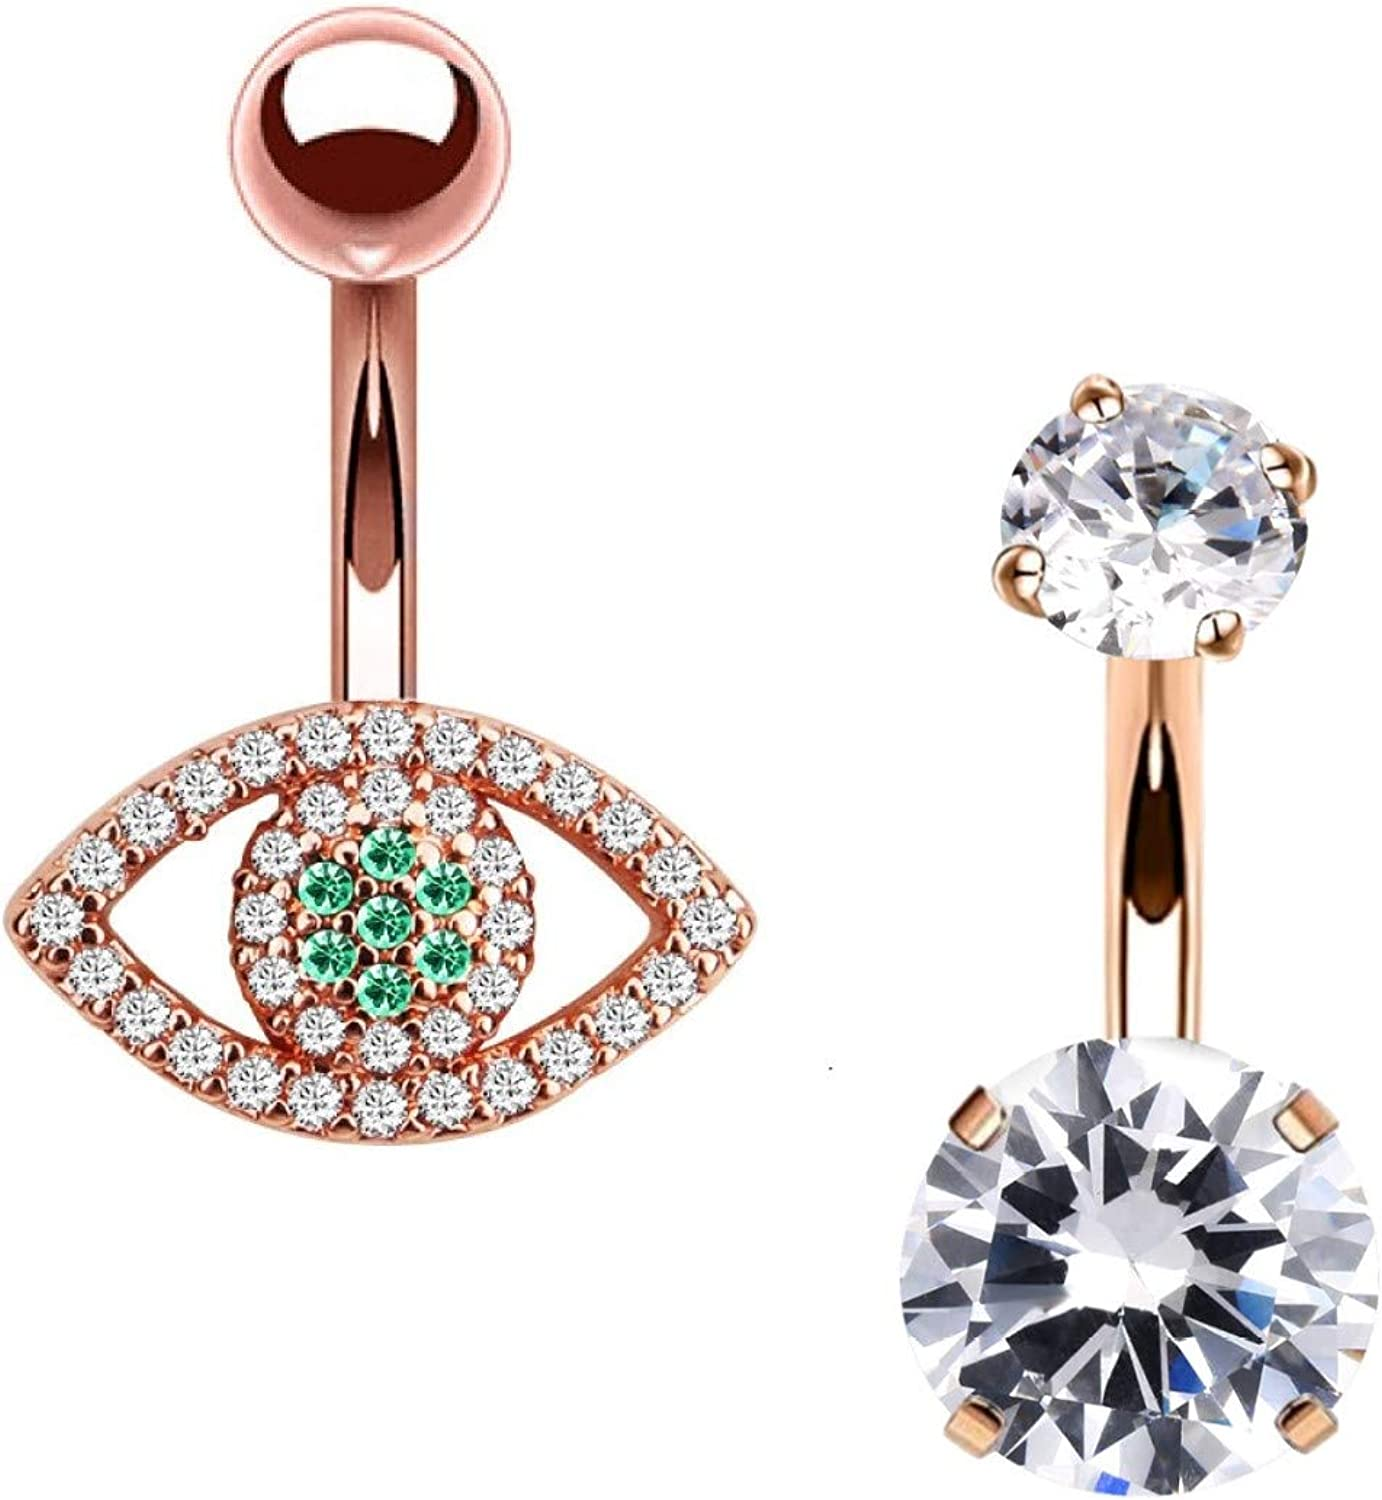 HAO HONG Belly Button Rings Clear CZ Navel Rings Belly Rings Belly Piercing Body Piercing